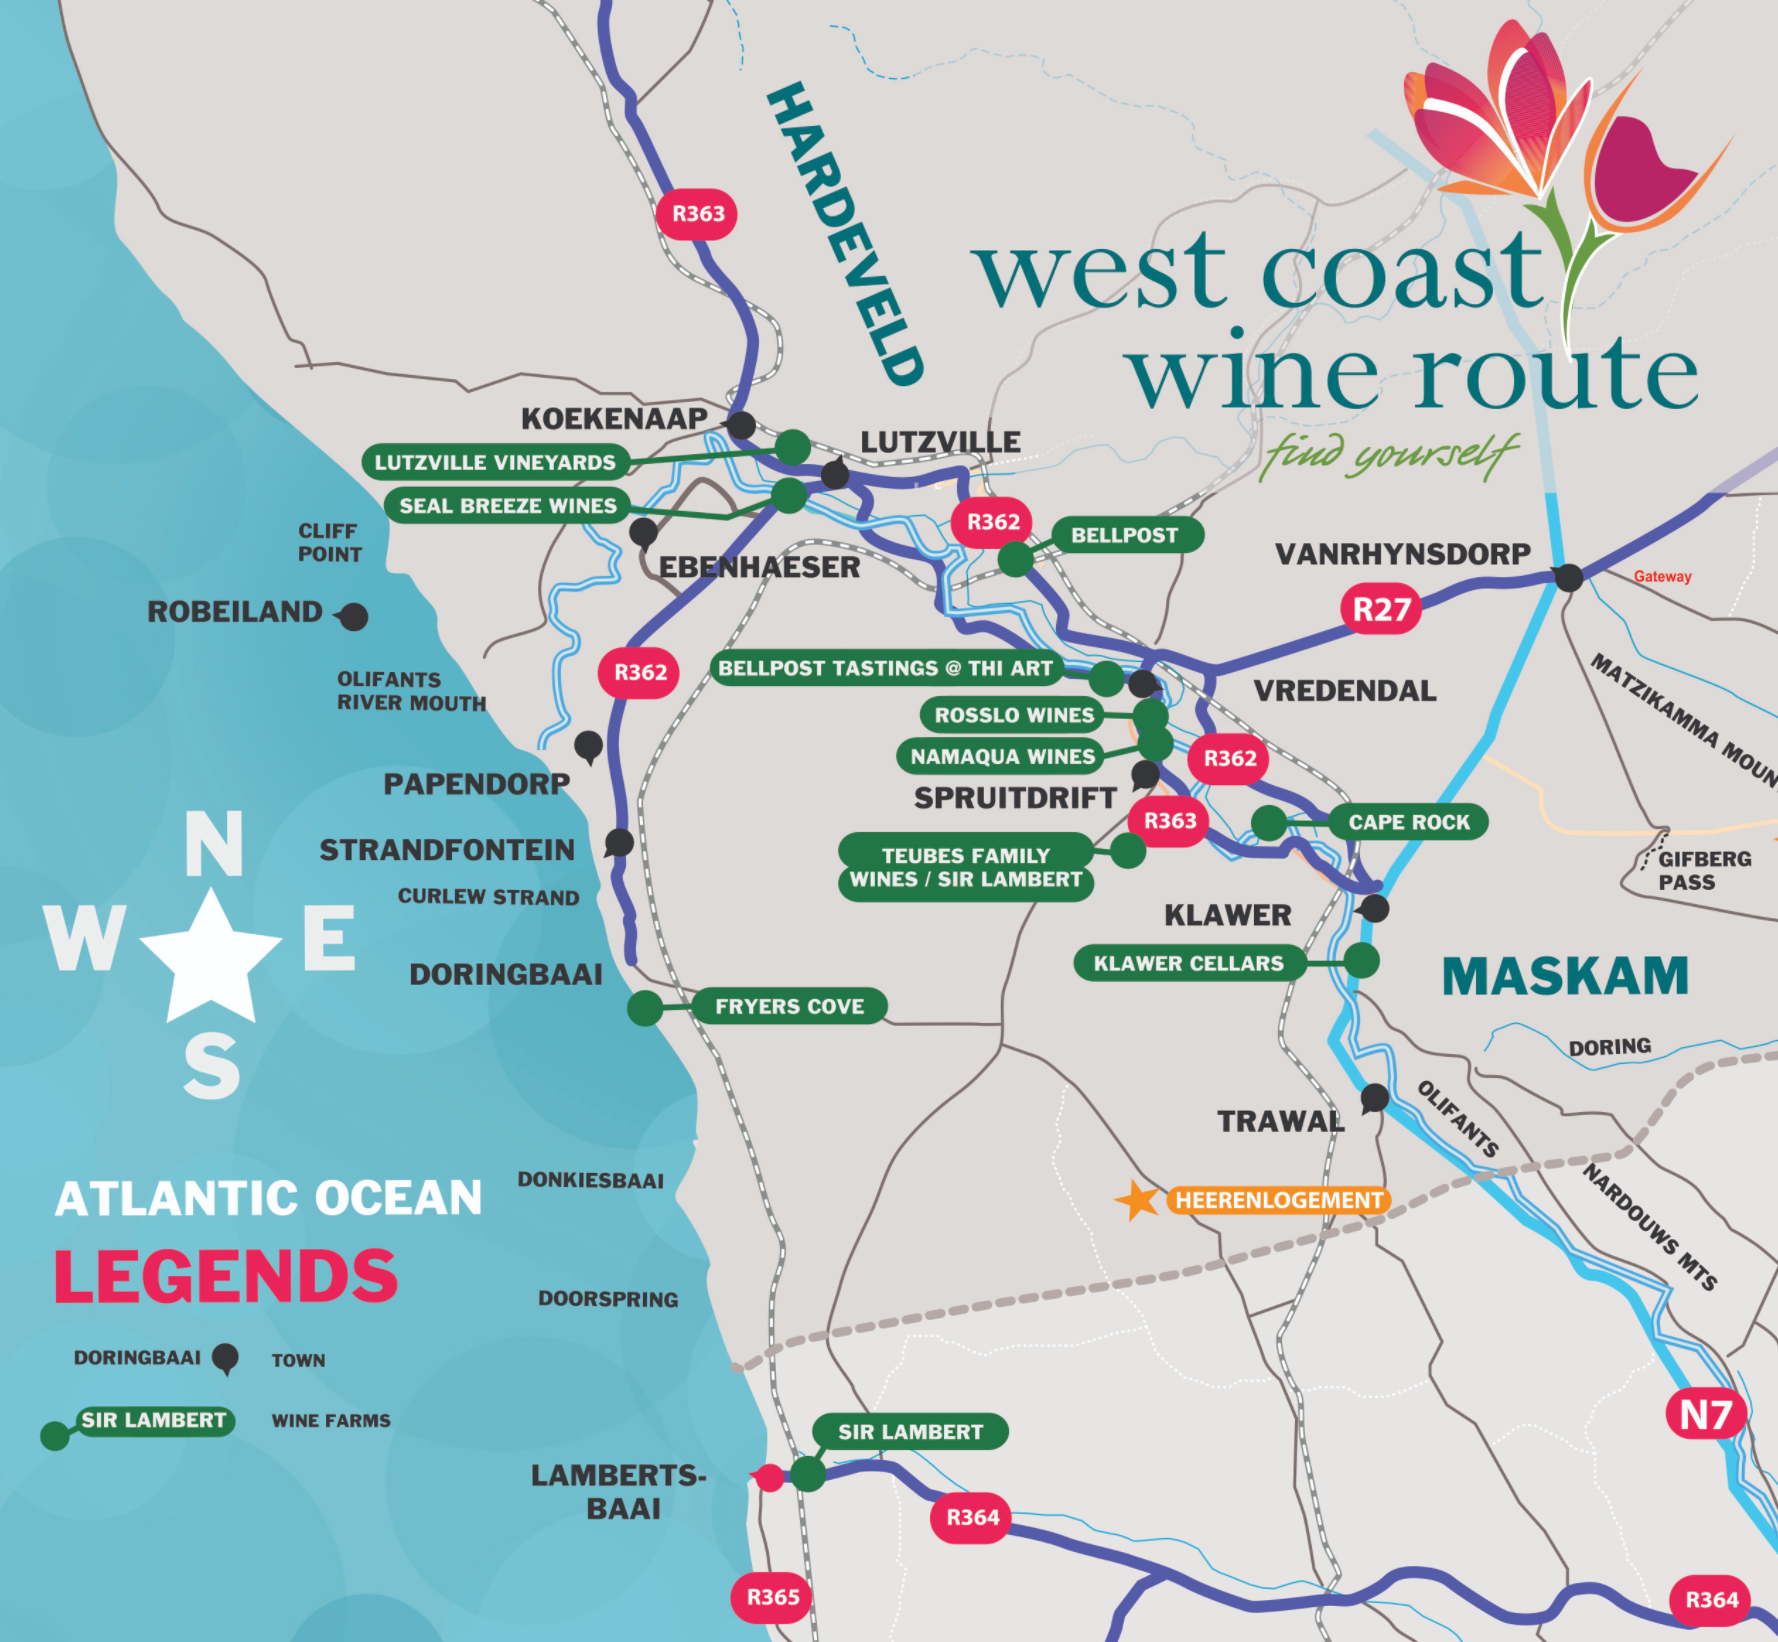 Map of West Coast Wine Route